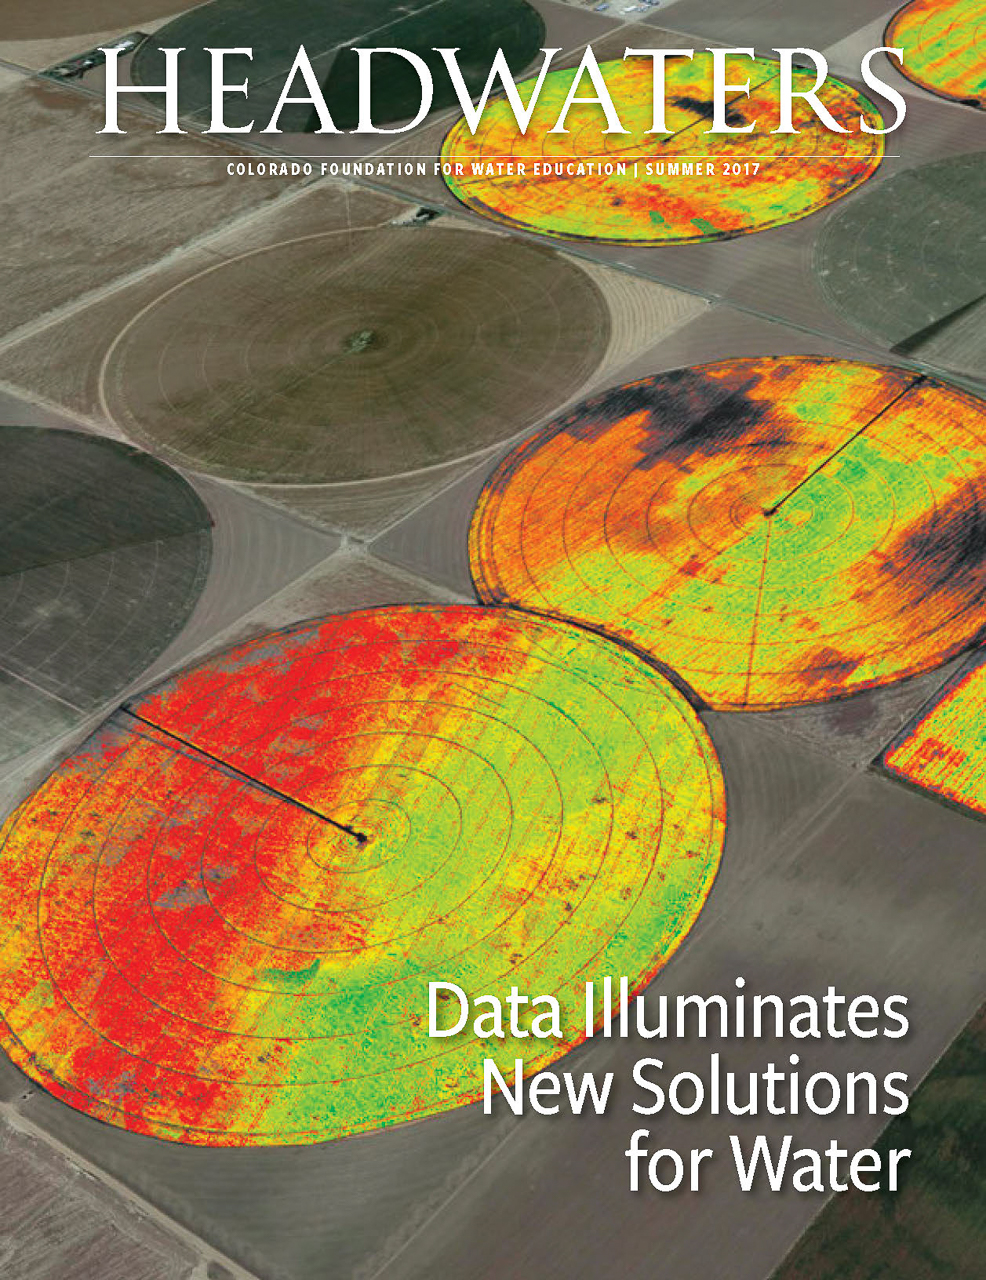 Client: Headwaters Magazine Summer 2017Project: Locate photo for cover on data gathering in CO pertaining to water issues and farming. Details: Agribotix FarmLens™ System Drones capture near-infrared sensor readings over fields in Colorado's Eastern Plains. Courtesy Agribotix/background image © Google, 2016